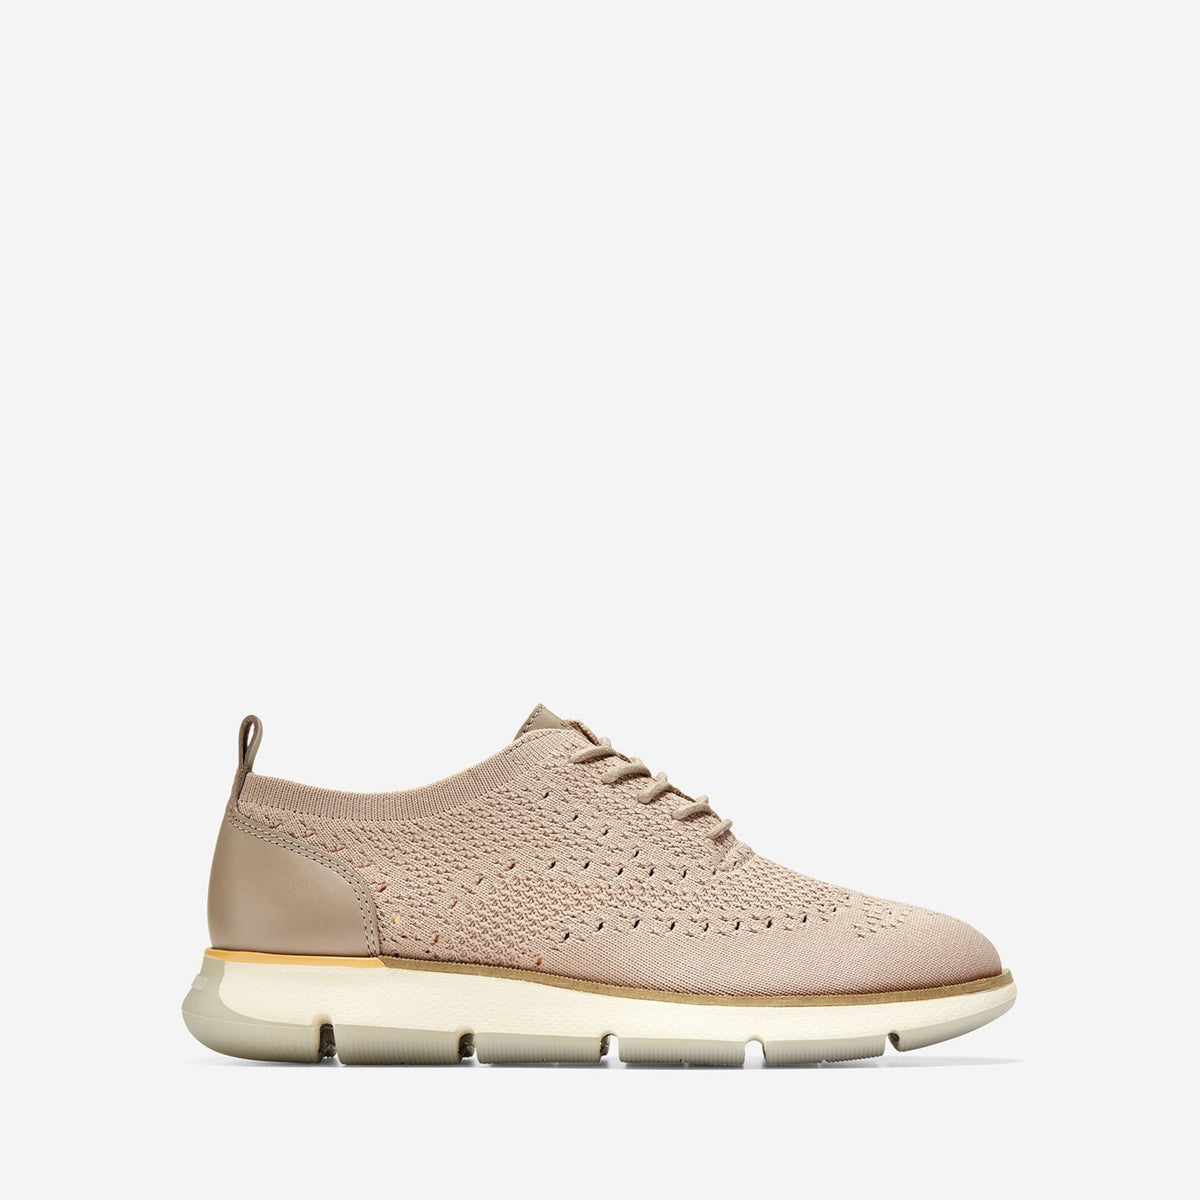 Women's 4.ZERØGRAND Stitchlite Oxford Trainer Etherea/Pumpkin